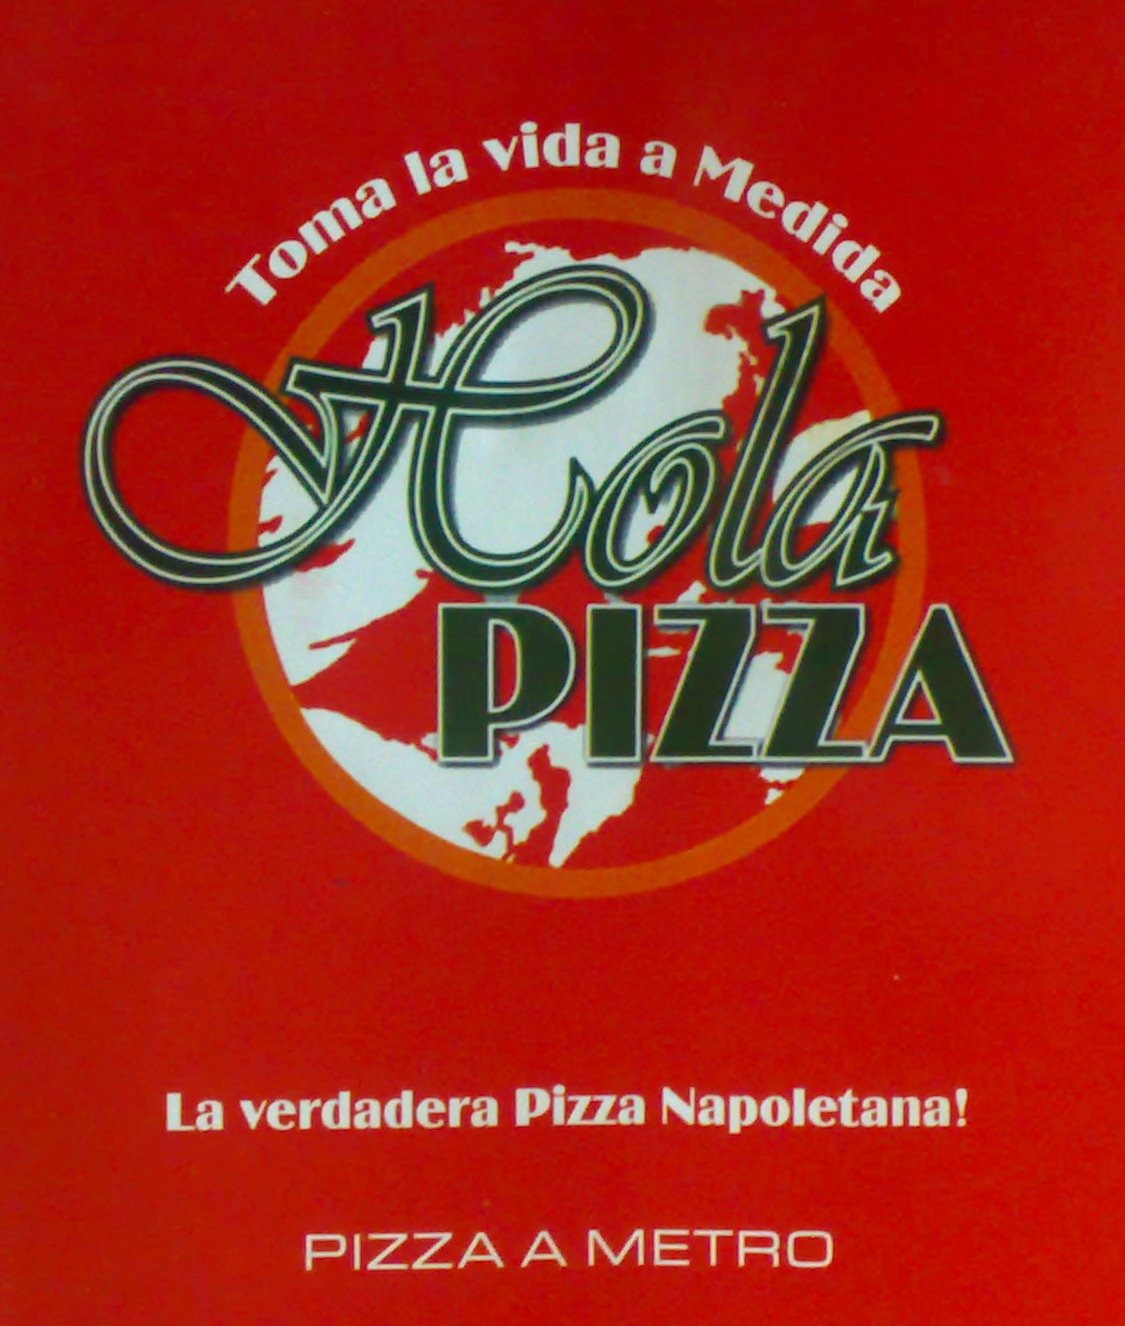 Hola pizza Metro  avatar